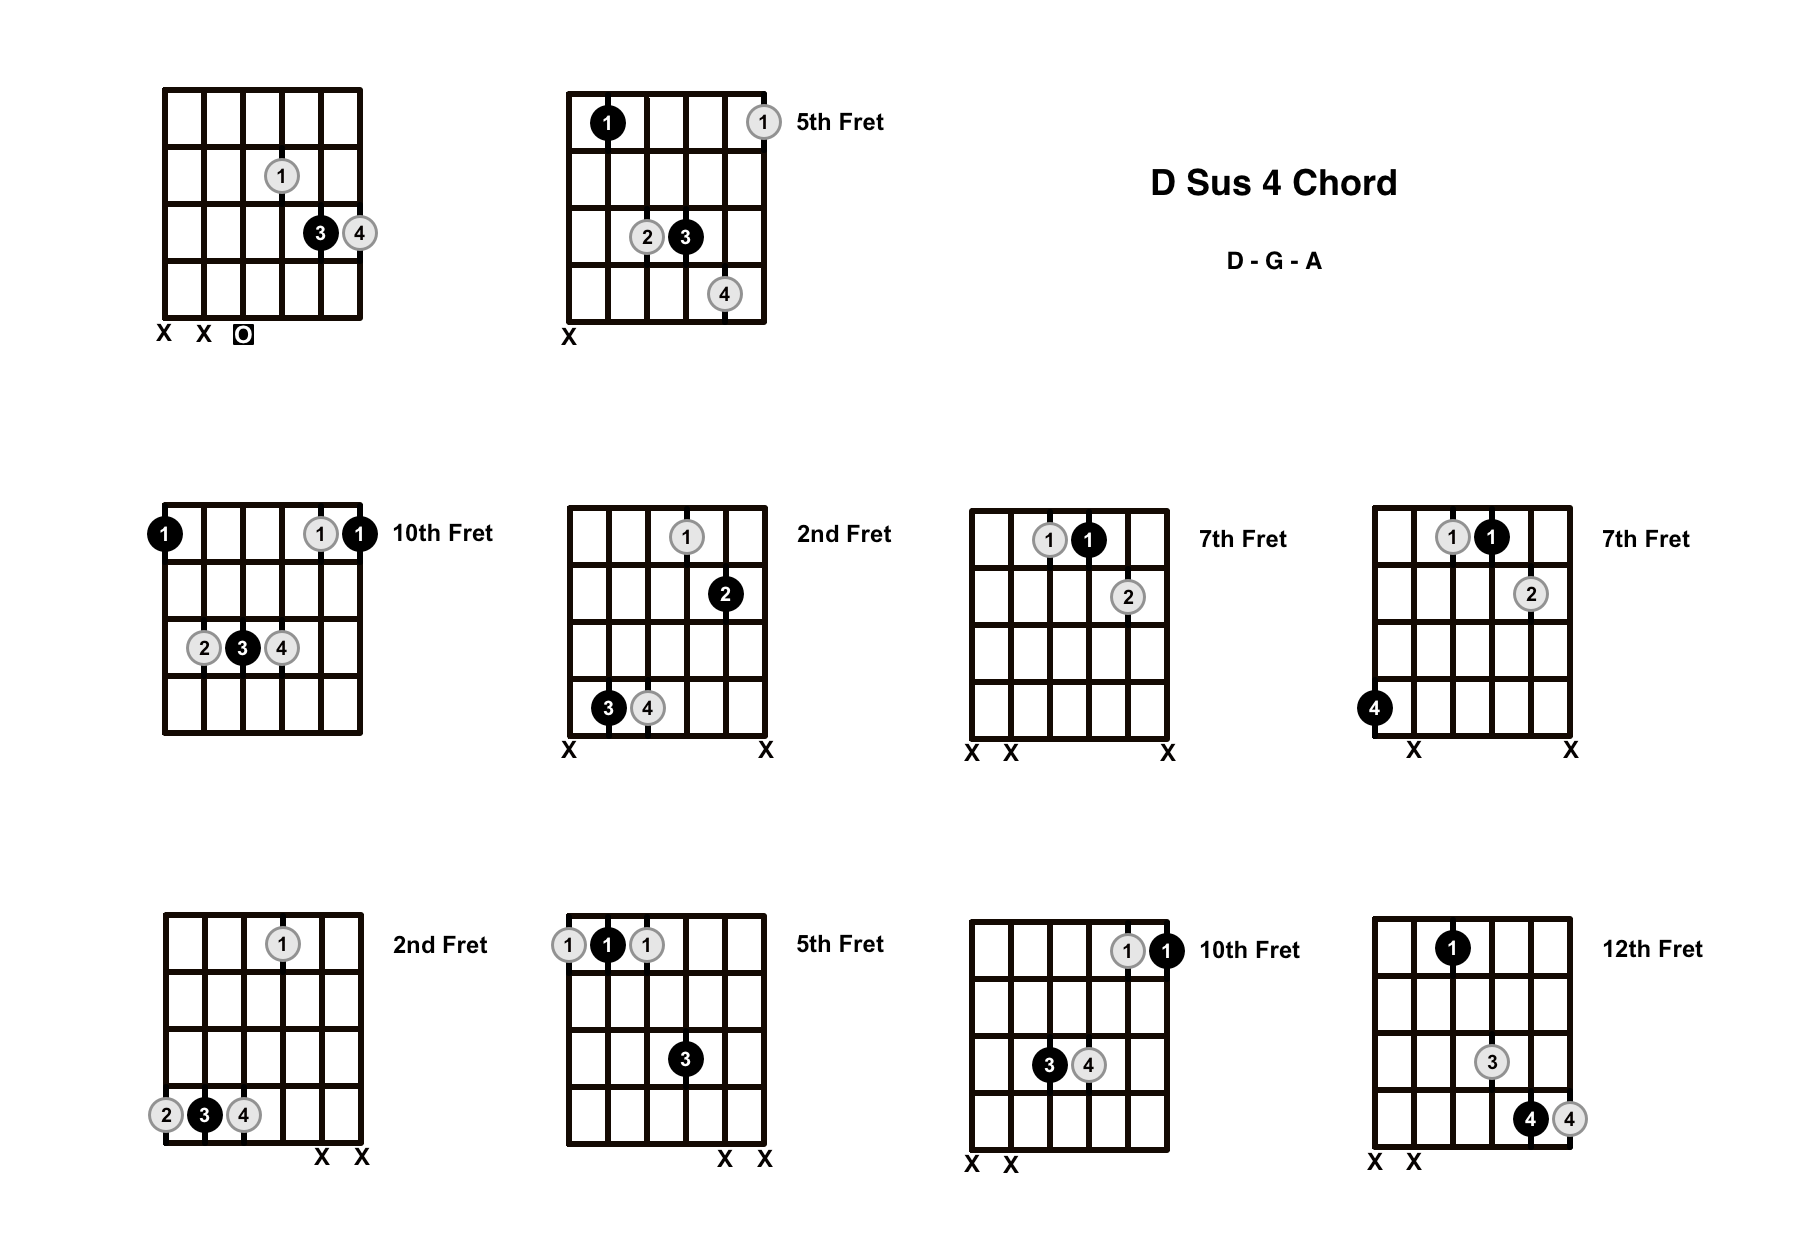 D Sus 4 Chord On The Guitar (D Suspended 4) – Diagrams, Finger Positions and Theory